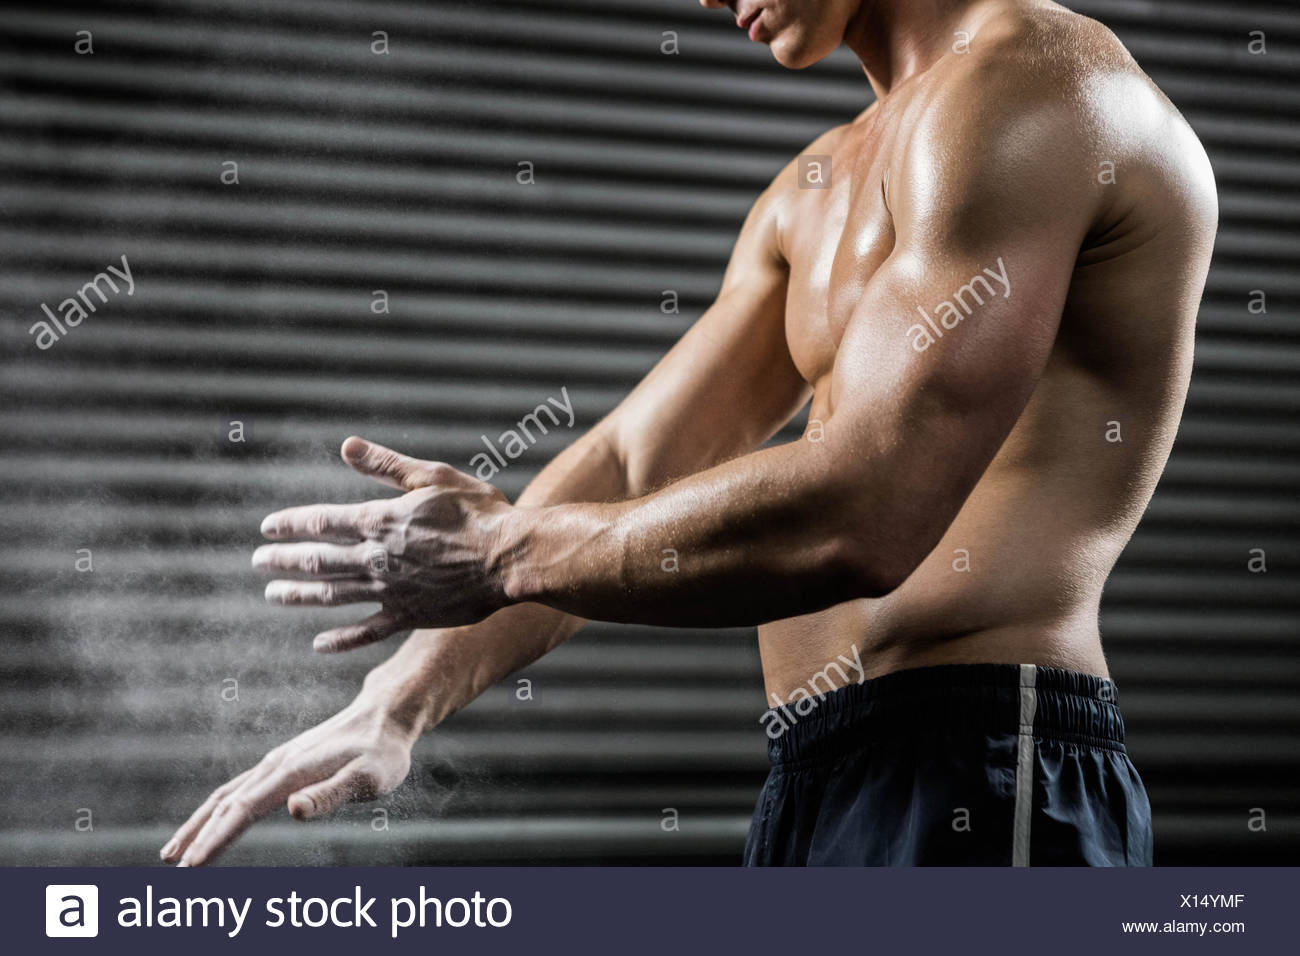 Shirtless man clapping hands with talc - Stock Image